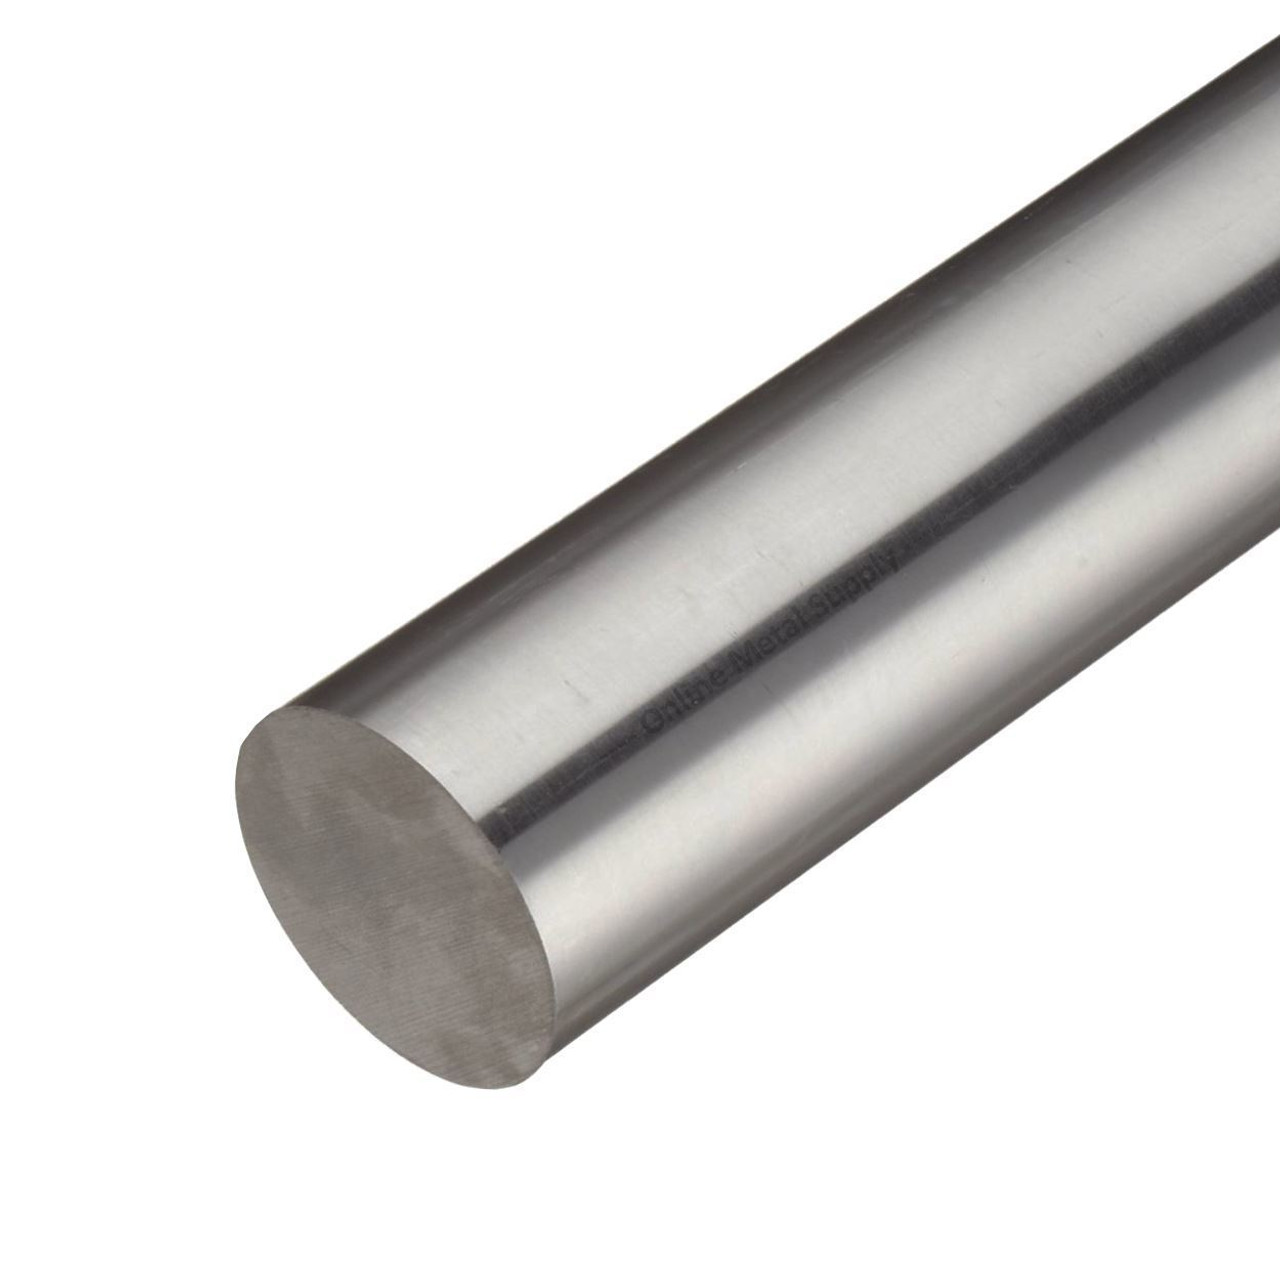 2.000 (2 inch) x 36 inches, 15-5 Cond A CF Stainless Steel Round Rod